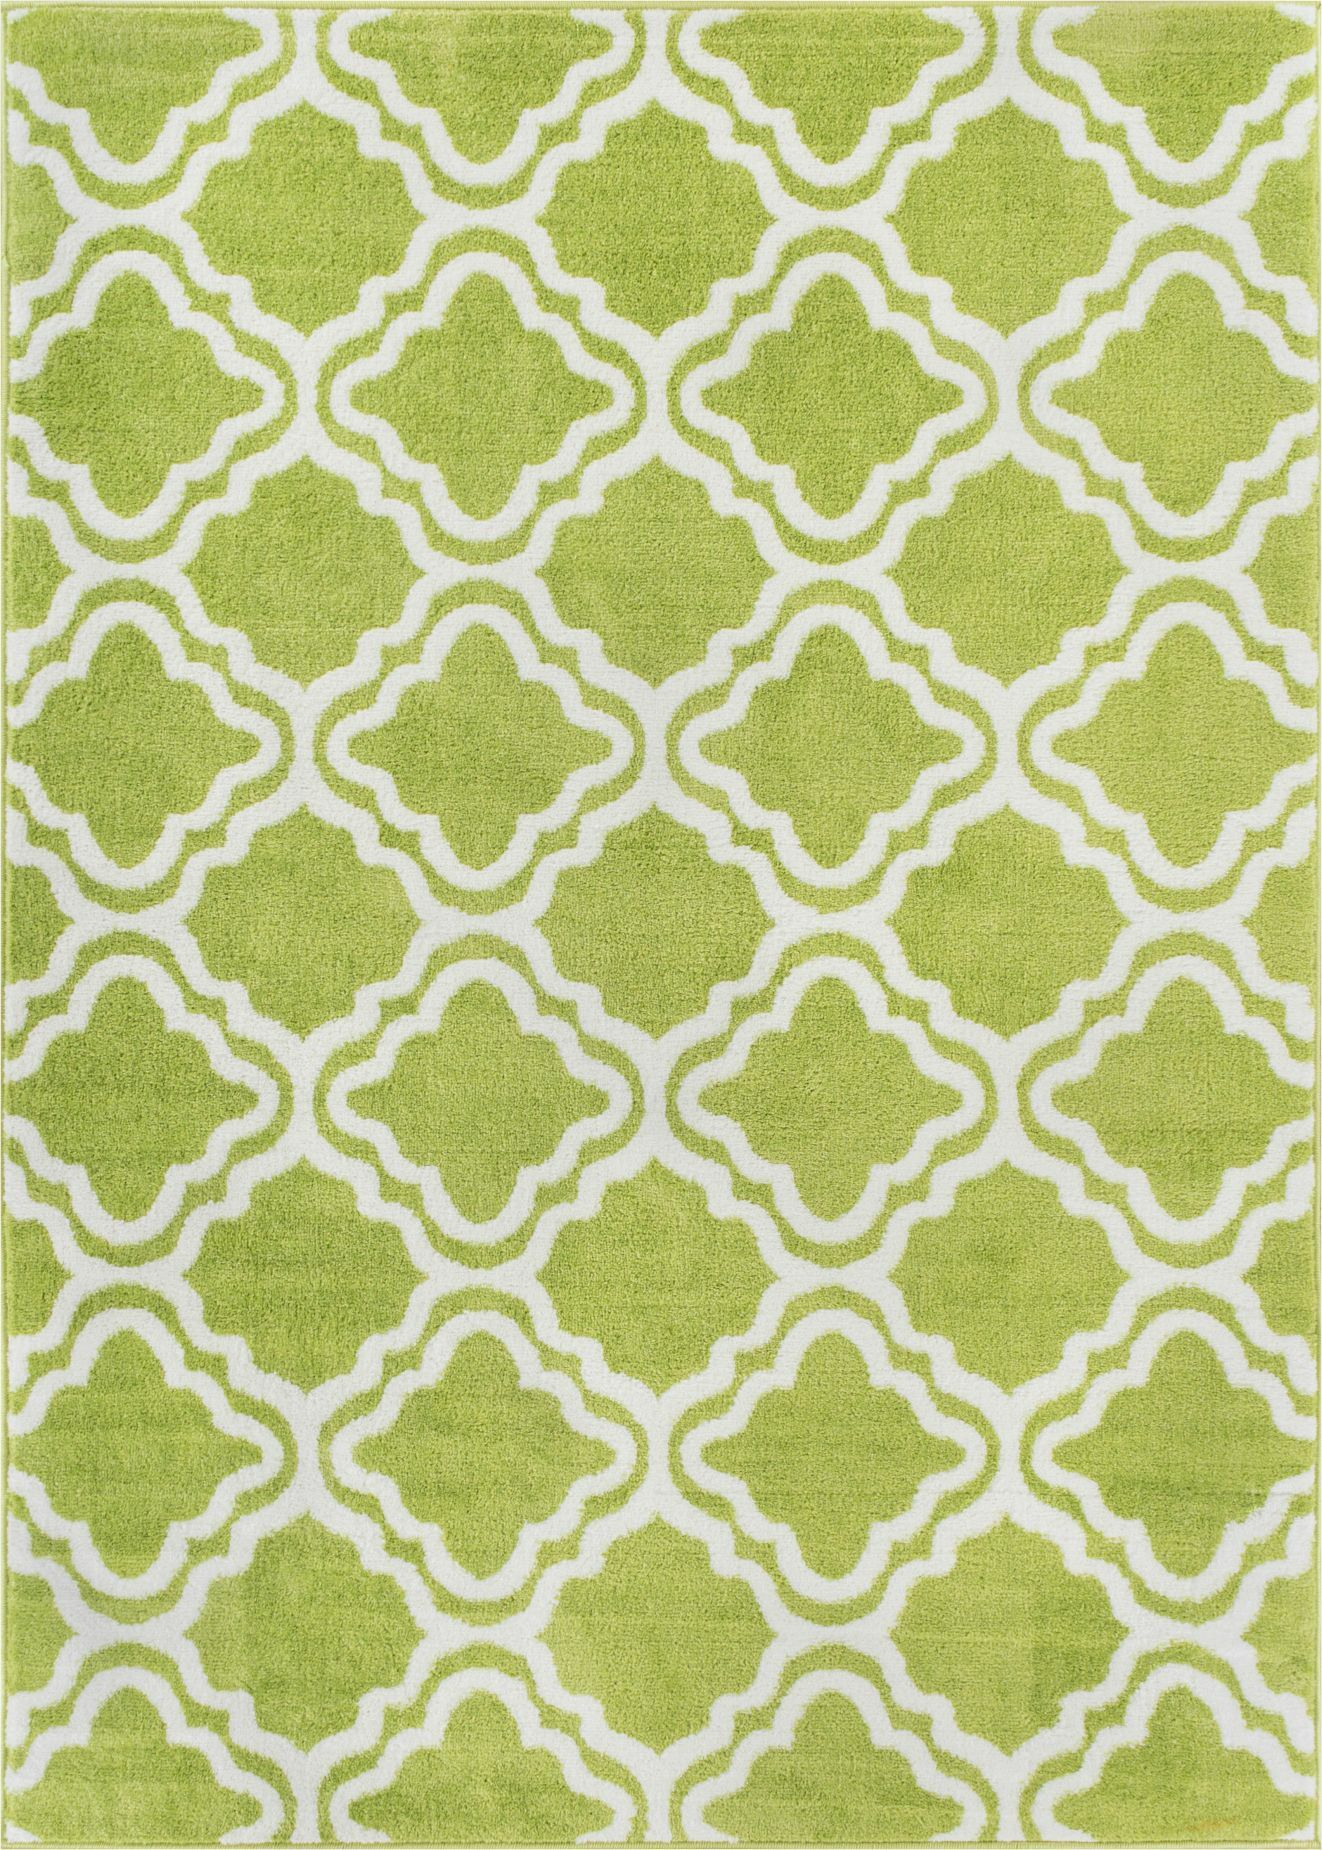 Juliet Calipso Lime Green Area Rug Rug Size: 5' x 7'